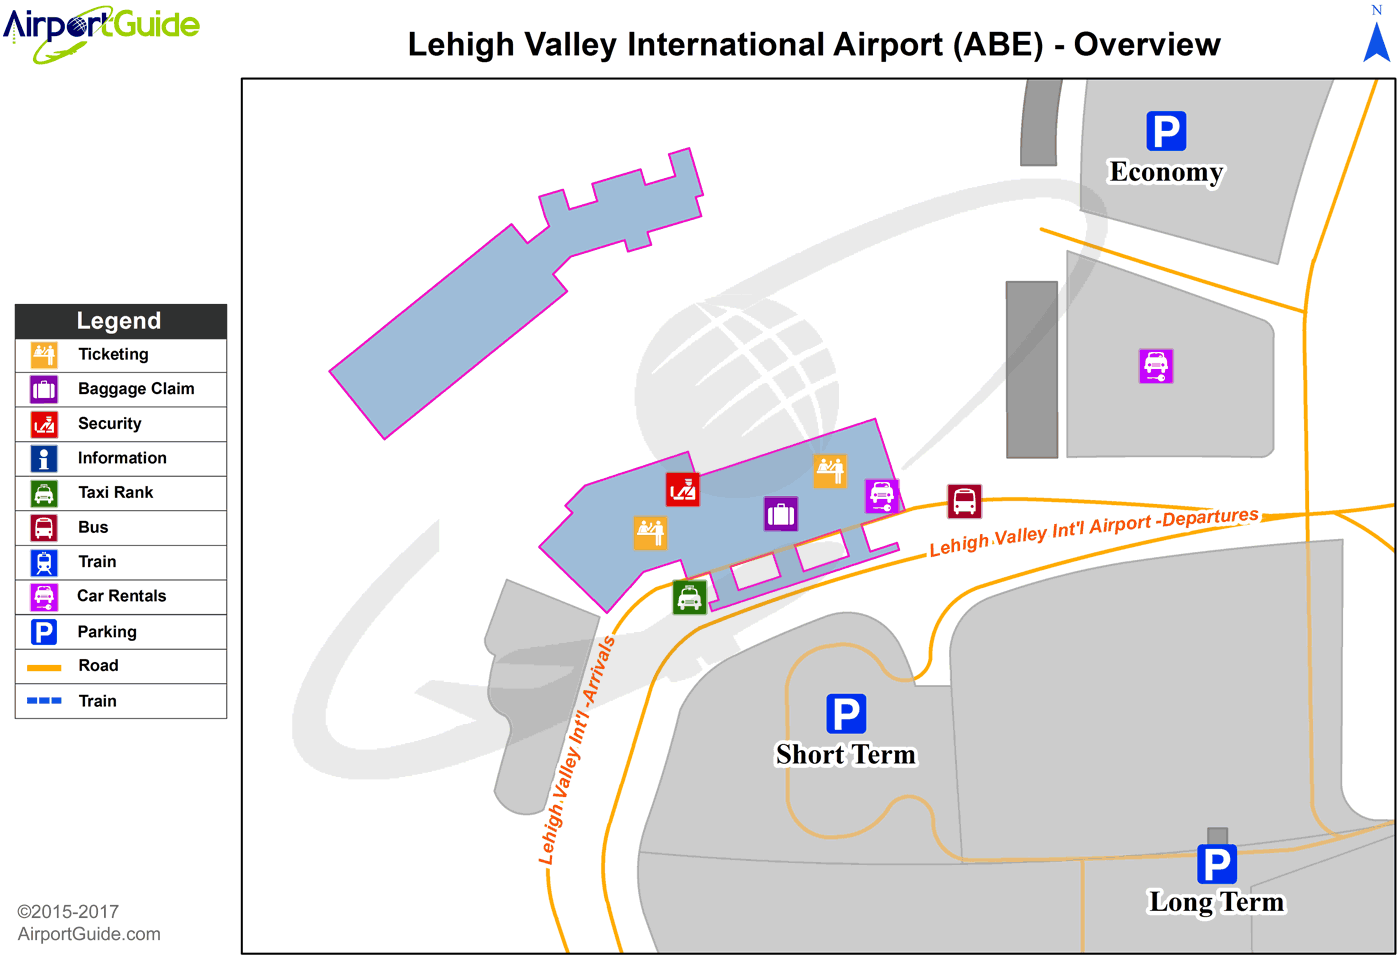 Allentown - Lehigh Valley International (ABE) Airport Terminal Map - Overview